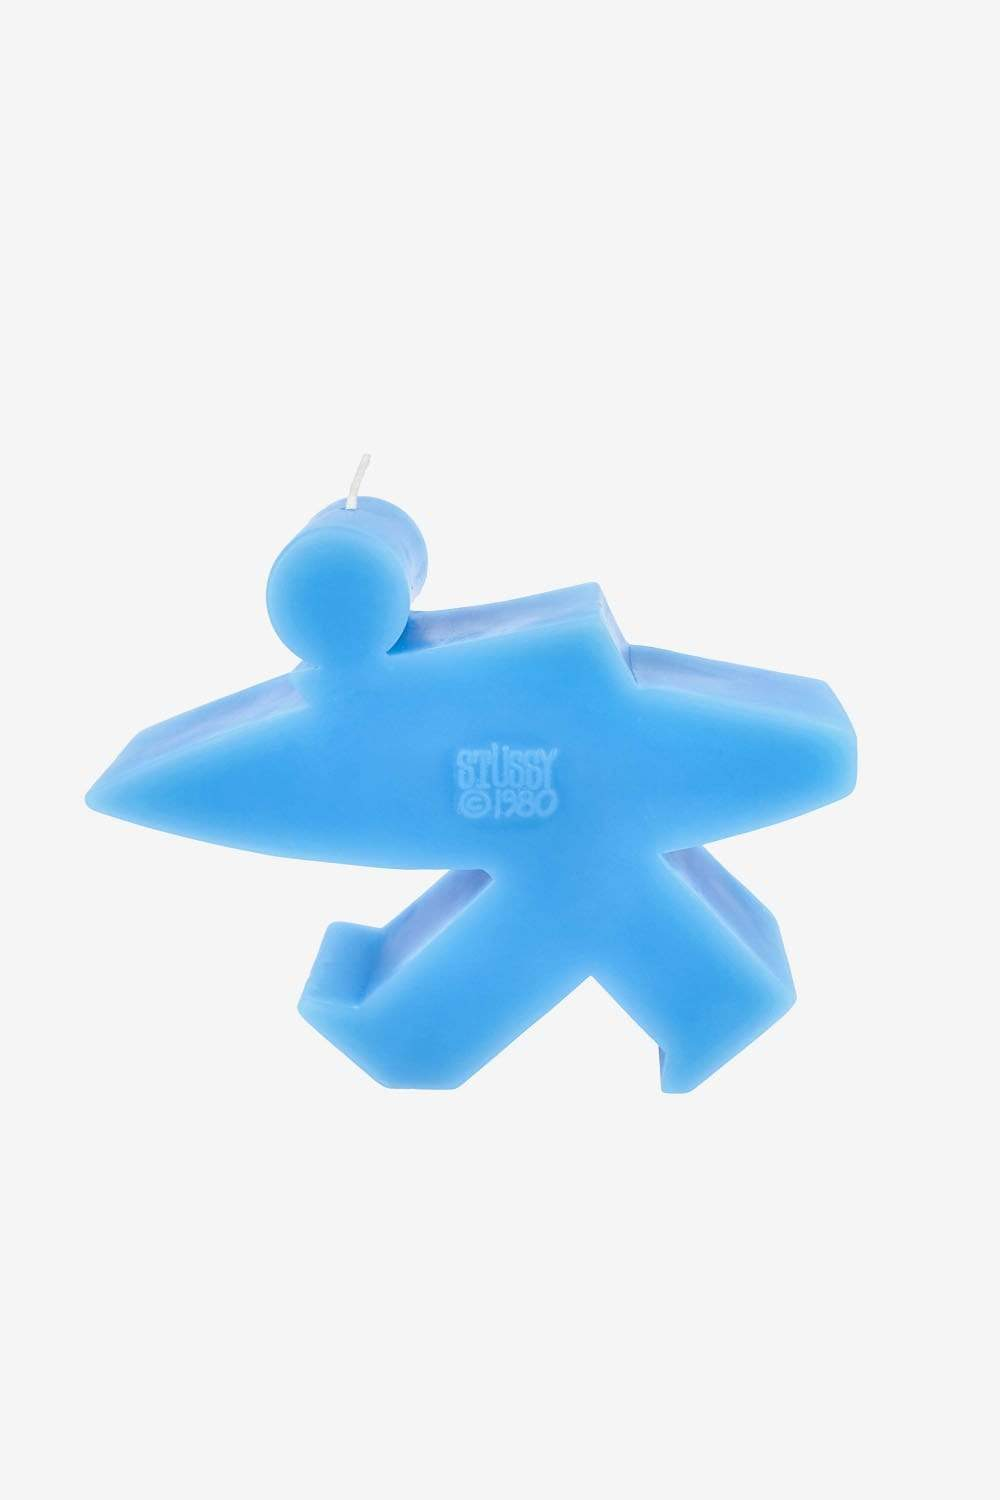 Stussy OS Surfman Candle